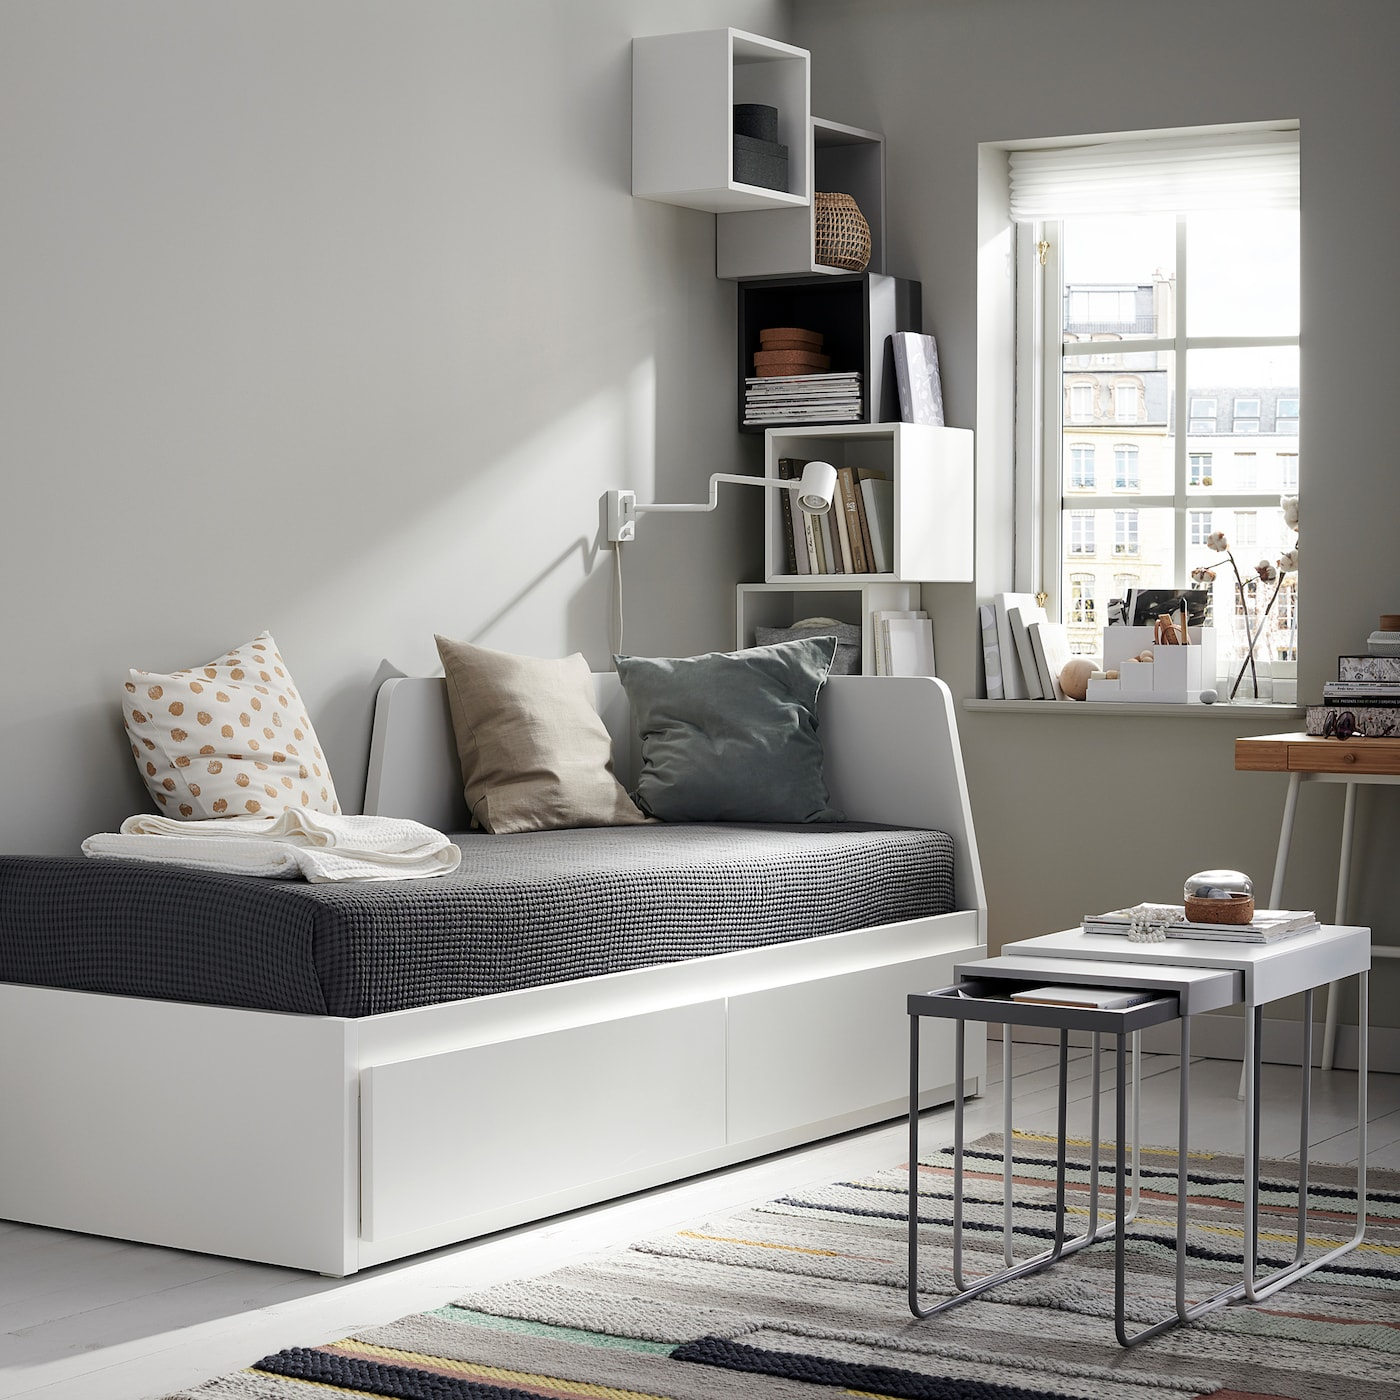 Flekke Day Bed Frame With 2 Drawers White 80x200 Cm Ikea